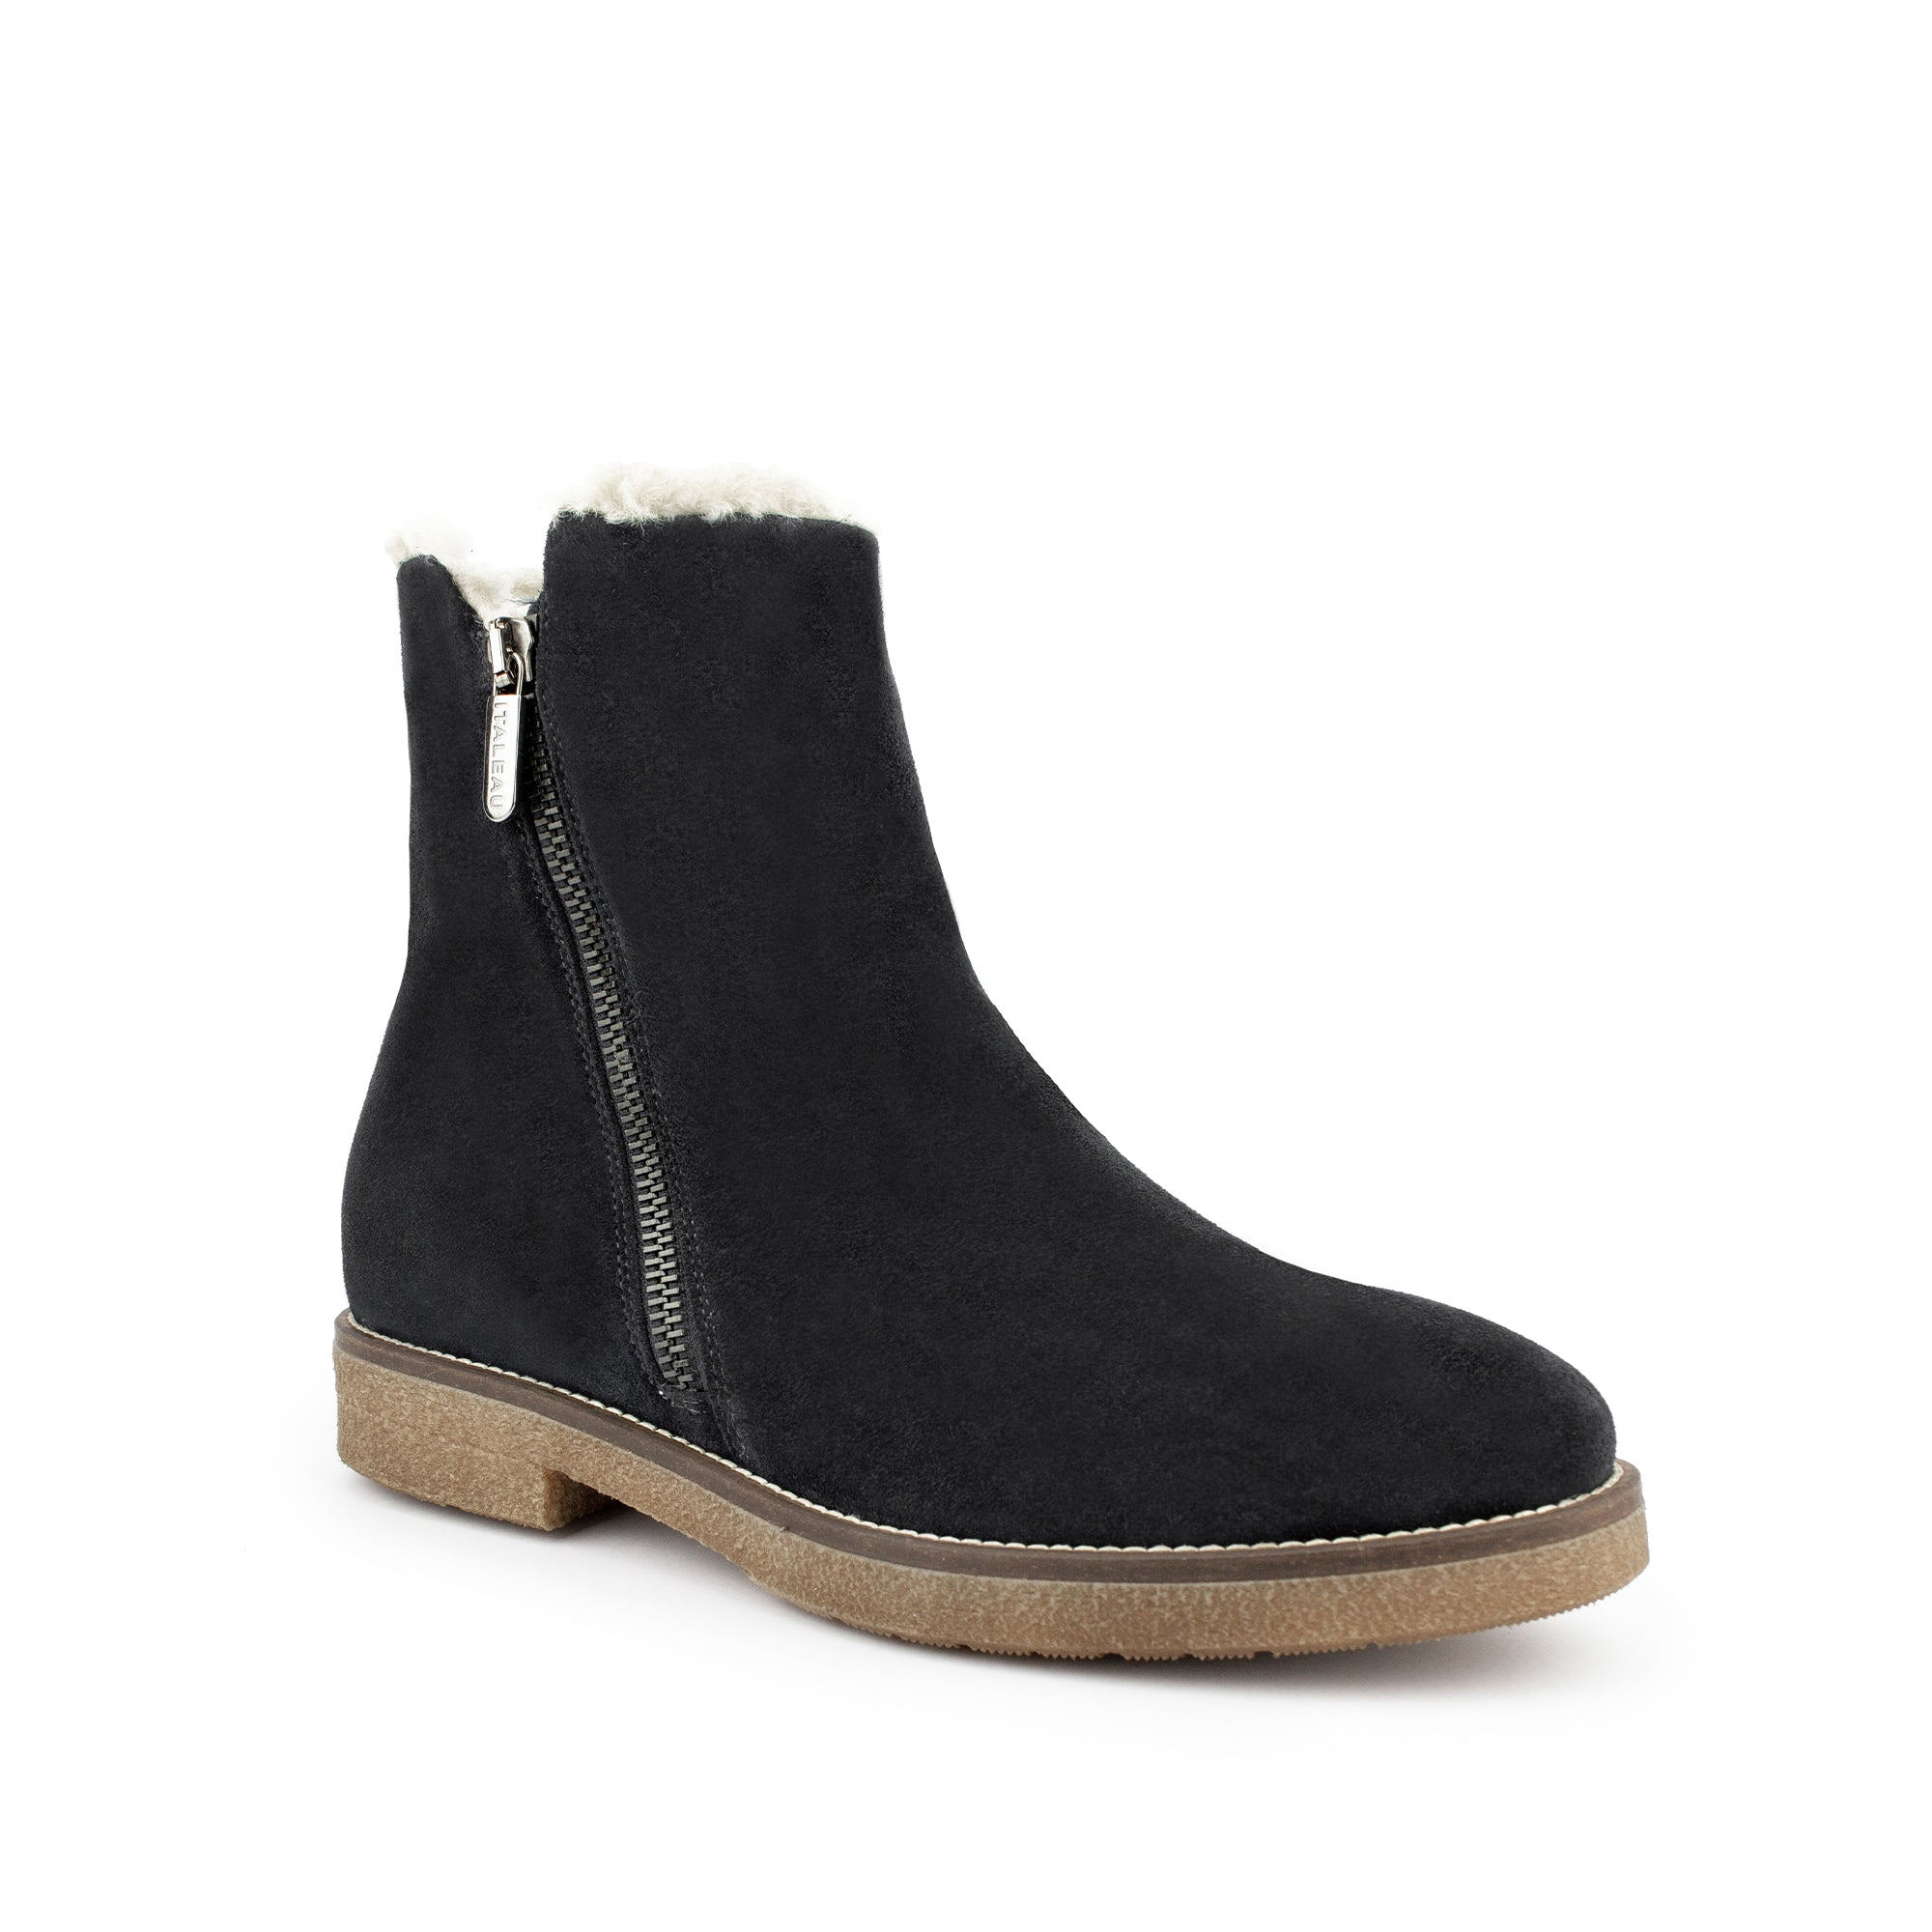 Fiorella Shearling Booties